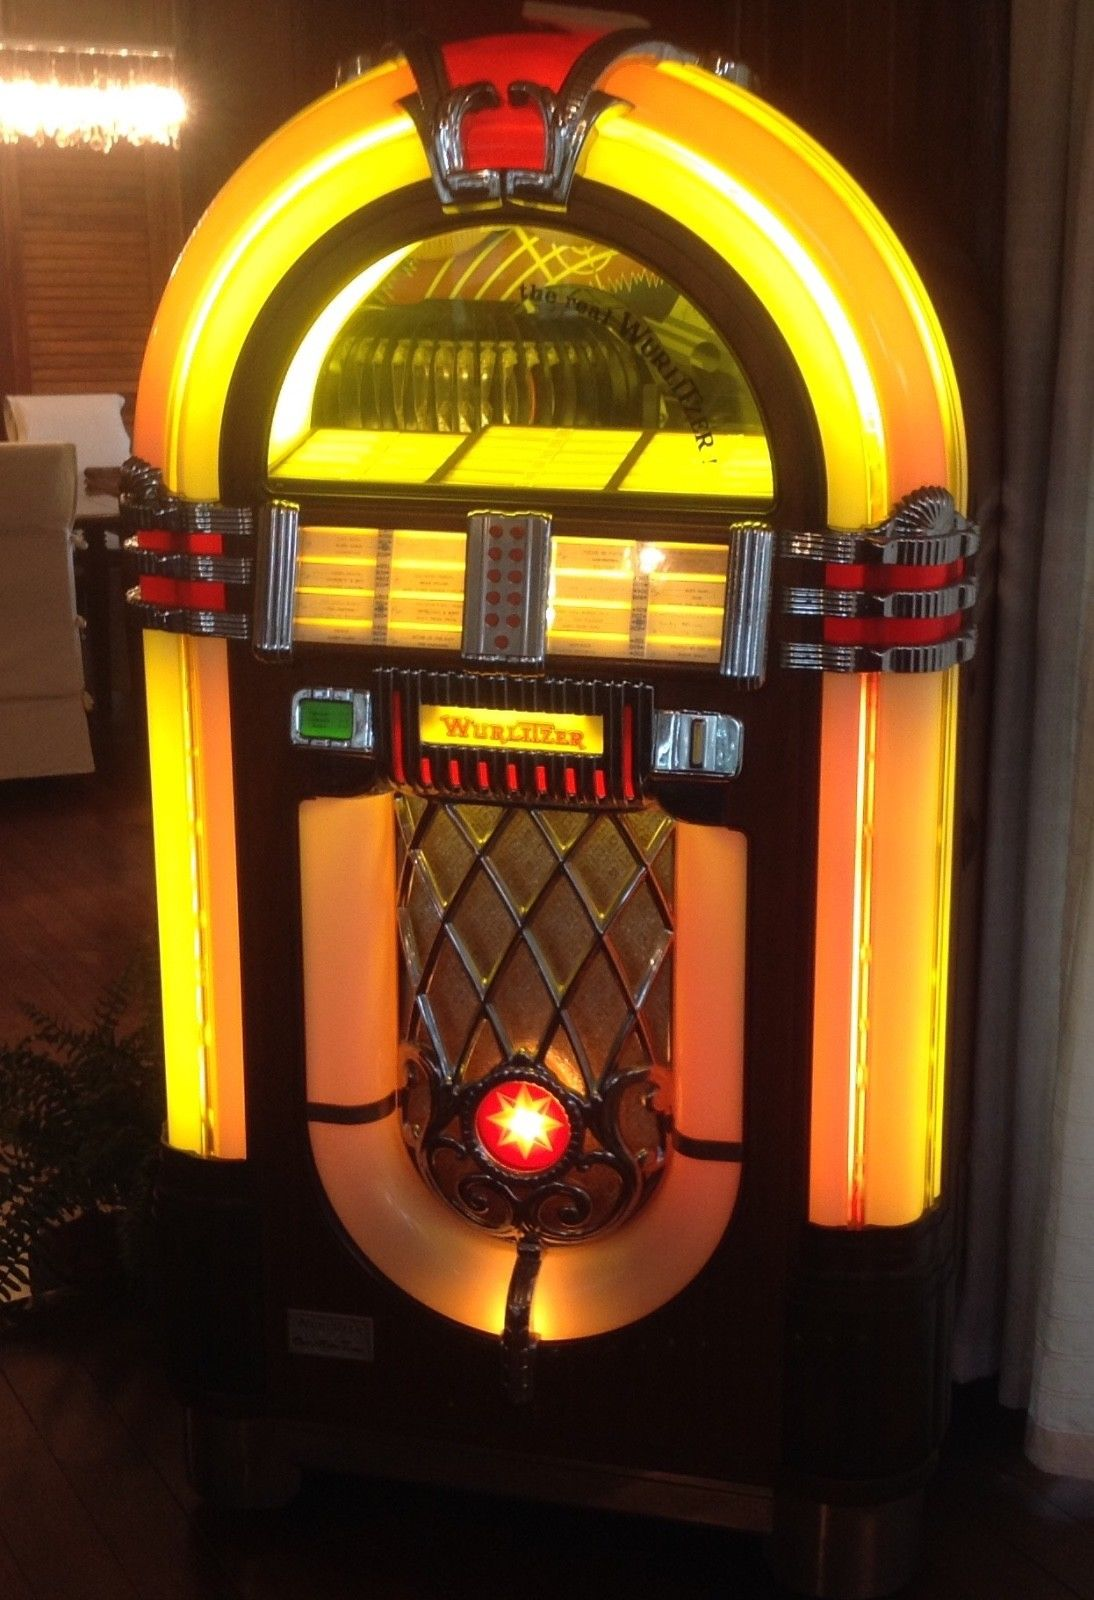 jukebox Wurlitzer OMT 45 tours vinyls Bubble